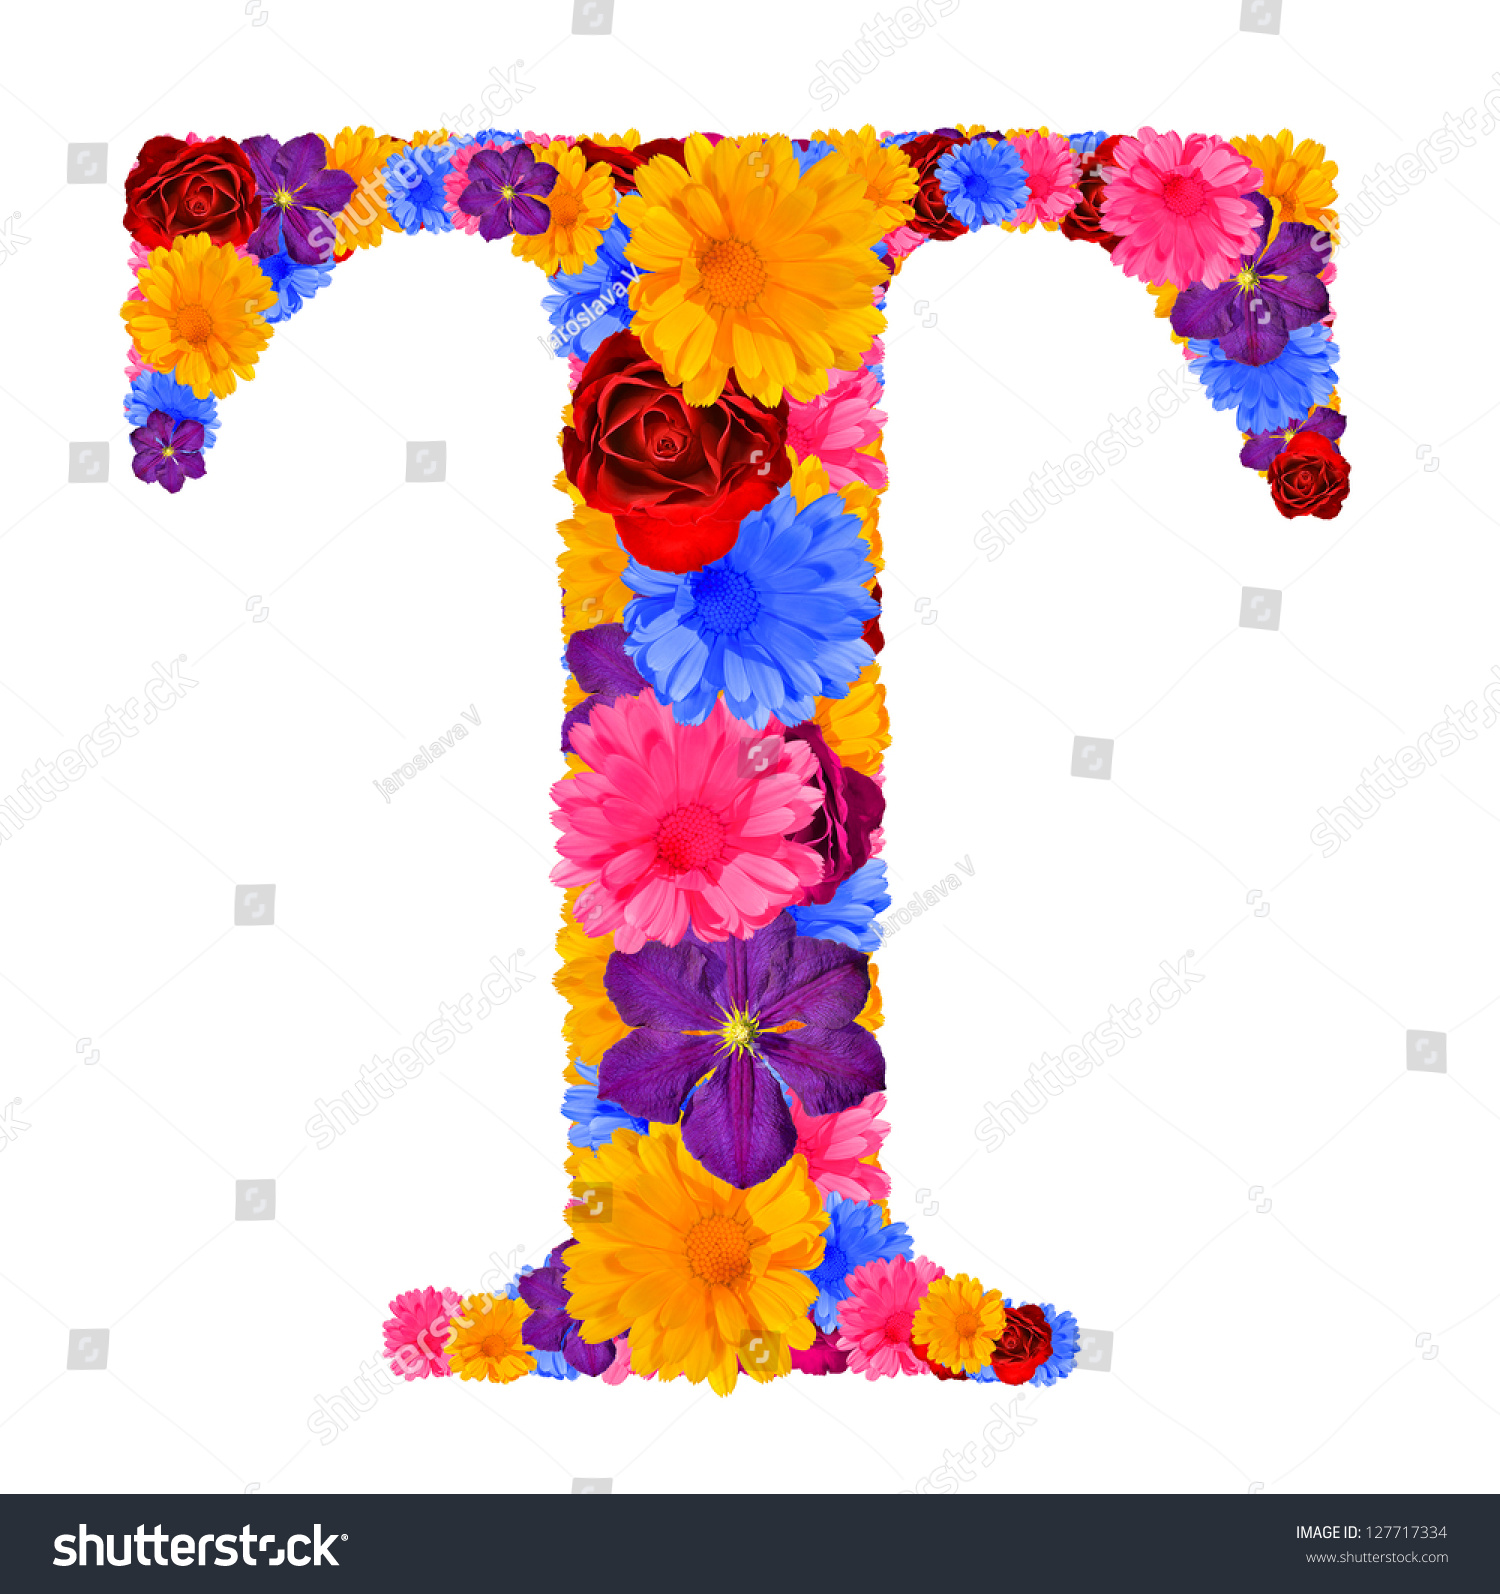 Pictures Of Flowers That Start With The Letter K